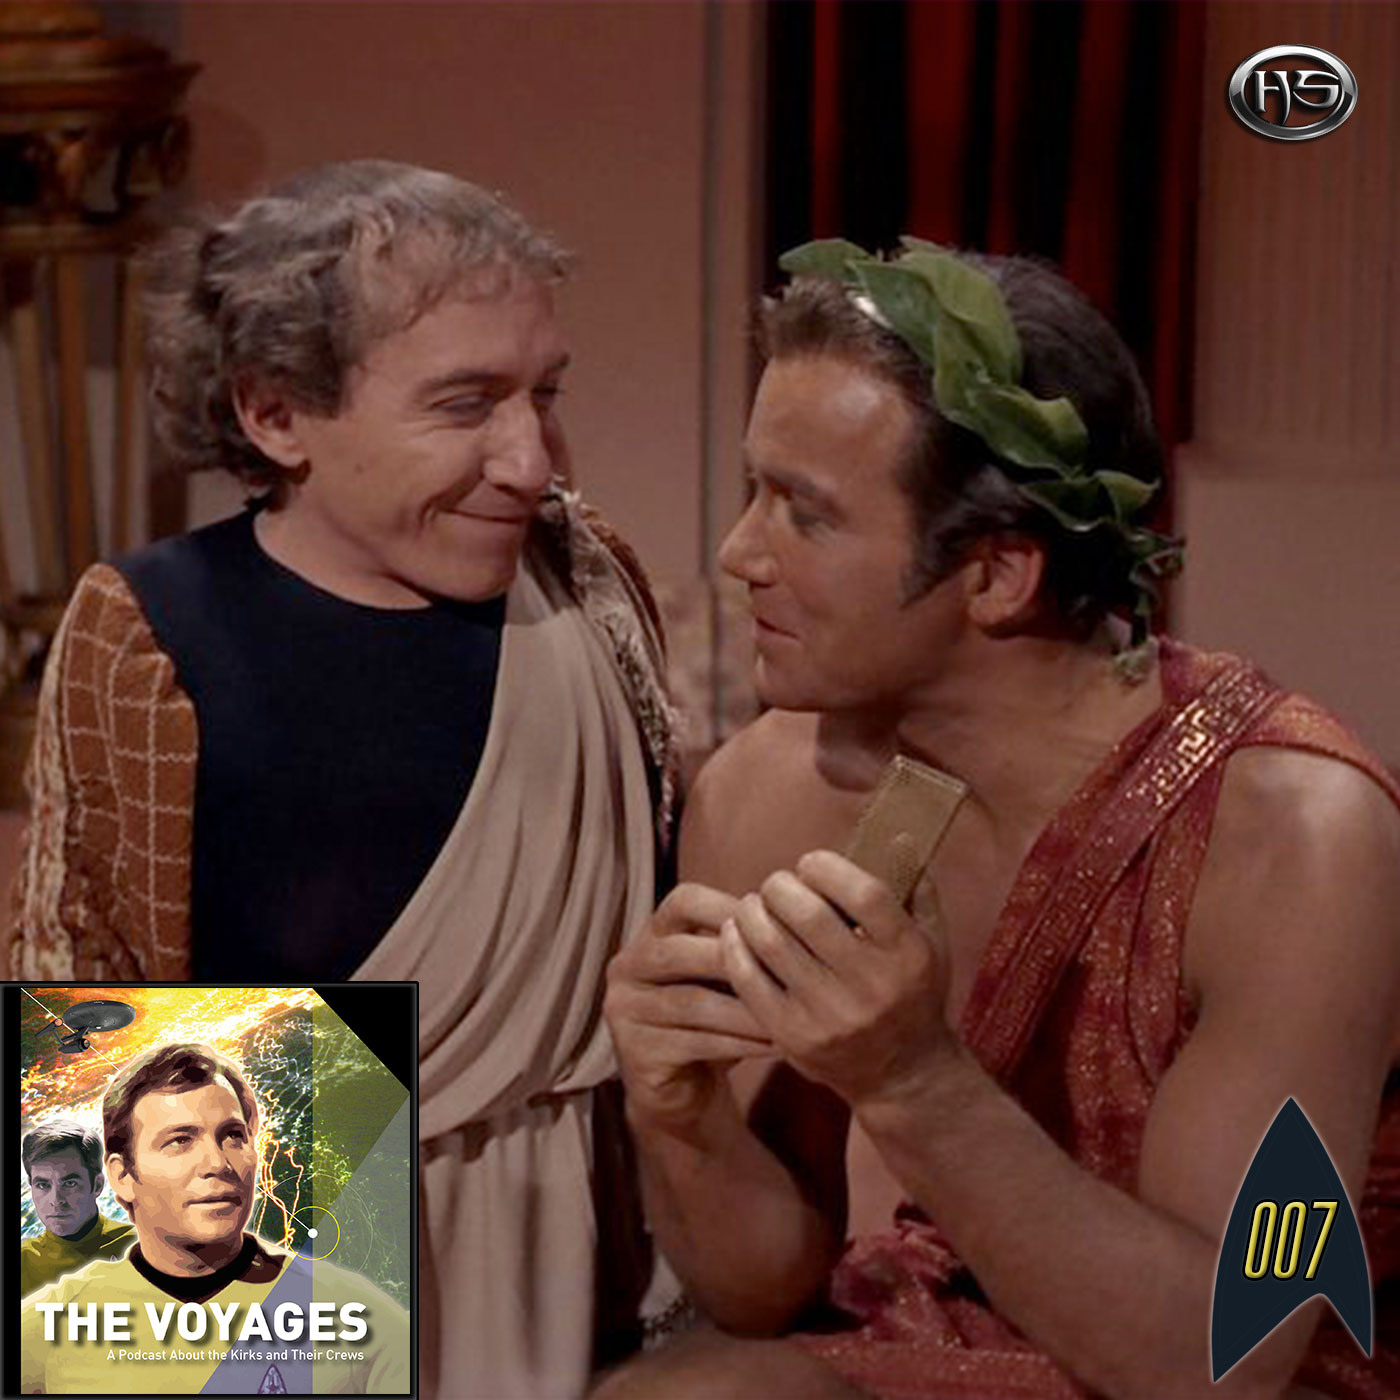 The Voyages Episode 7